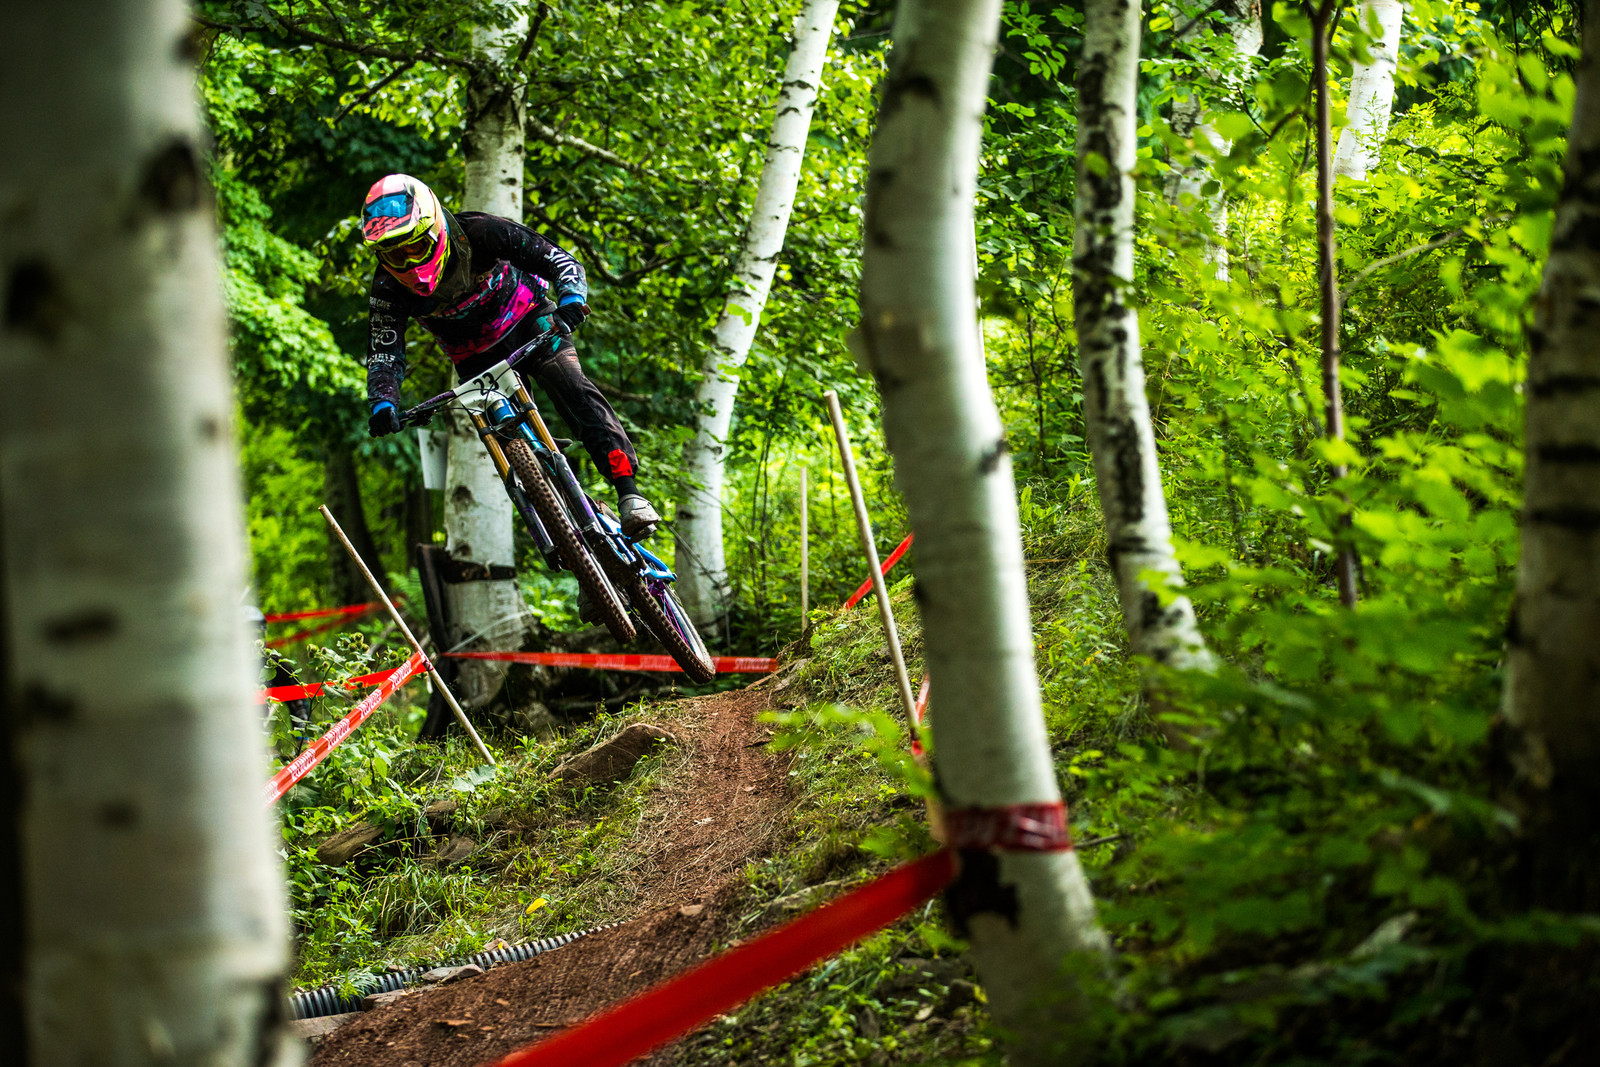 Ant Bielefeld - RACE DAY GALLERY - 2017 Pro GRT, Windham, NY - Mountain Biking Pictures - Vital MTB